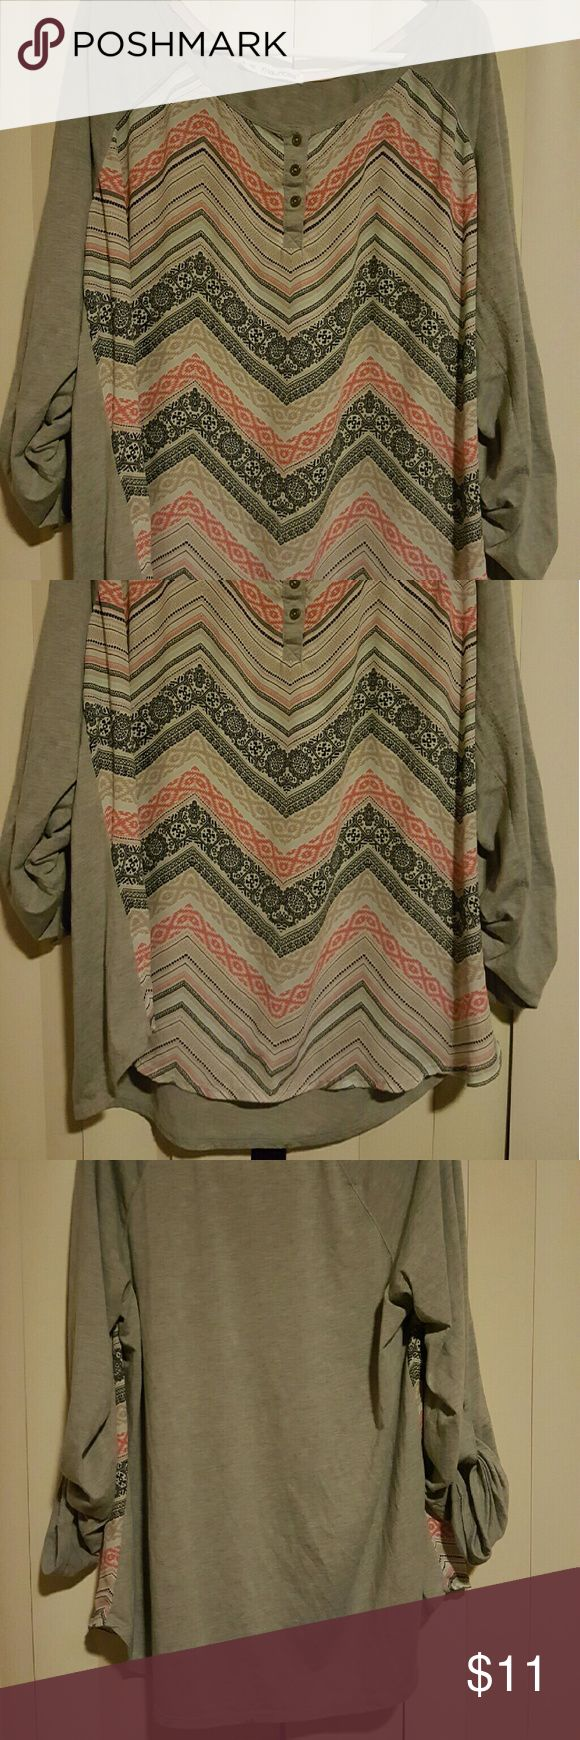 Maurices size 2 2XL 3XL chevron blouse A Maurice's size 2 is like a size 20-22. This top is in great condition. The sleeves can be worn as a 3/4 length or unbuttoned for full length. Maurices Tops Blouses